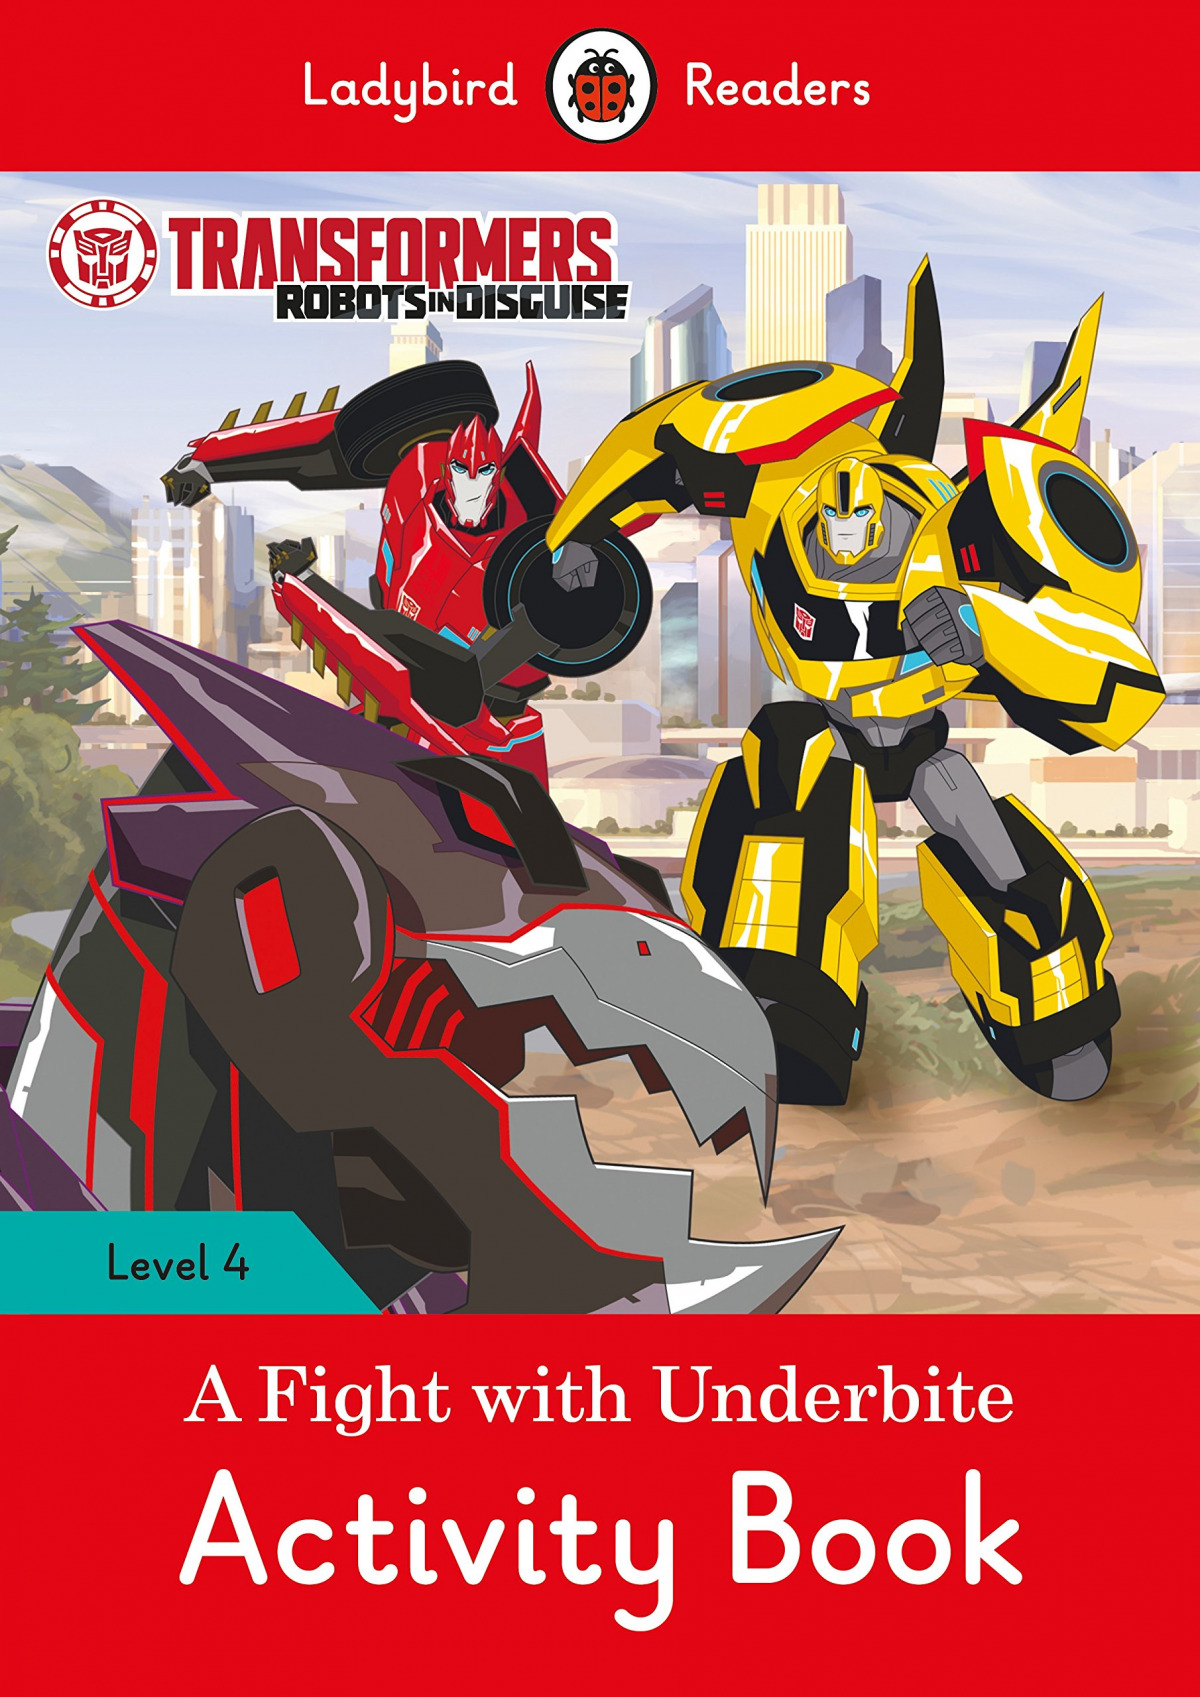 A FIGHT WITH UNDERBITE. TRANSFORMERS. ACTIVITY BOOK